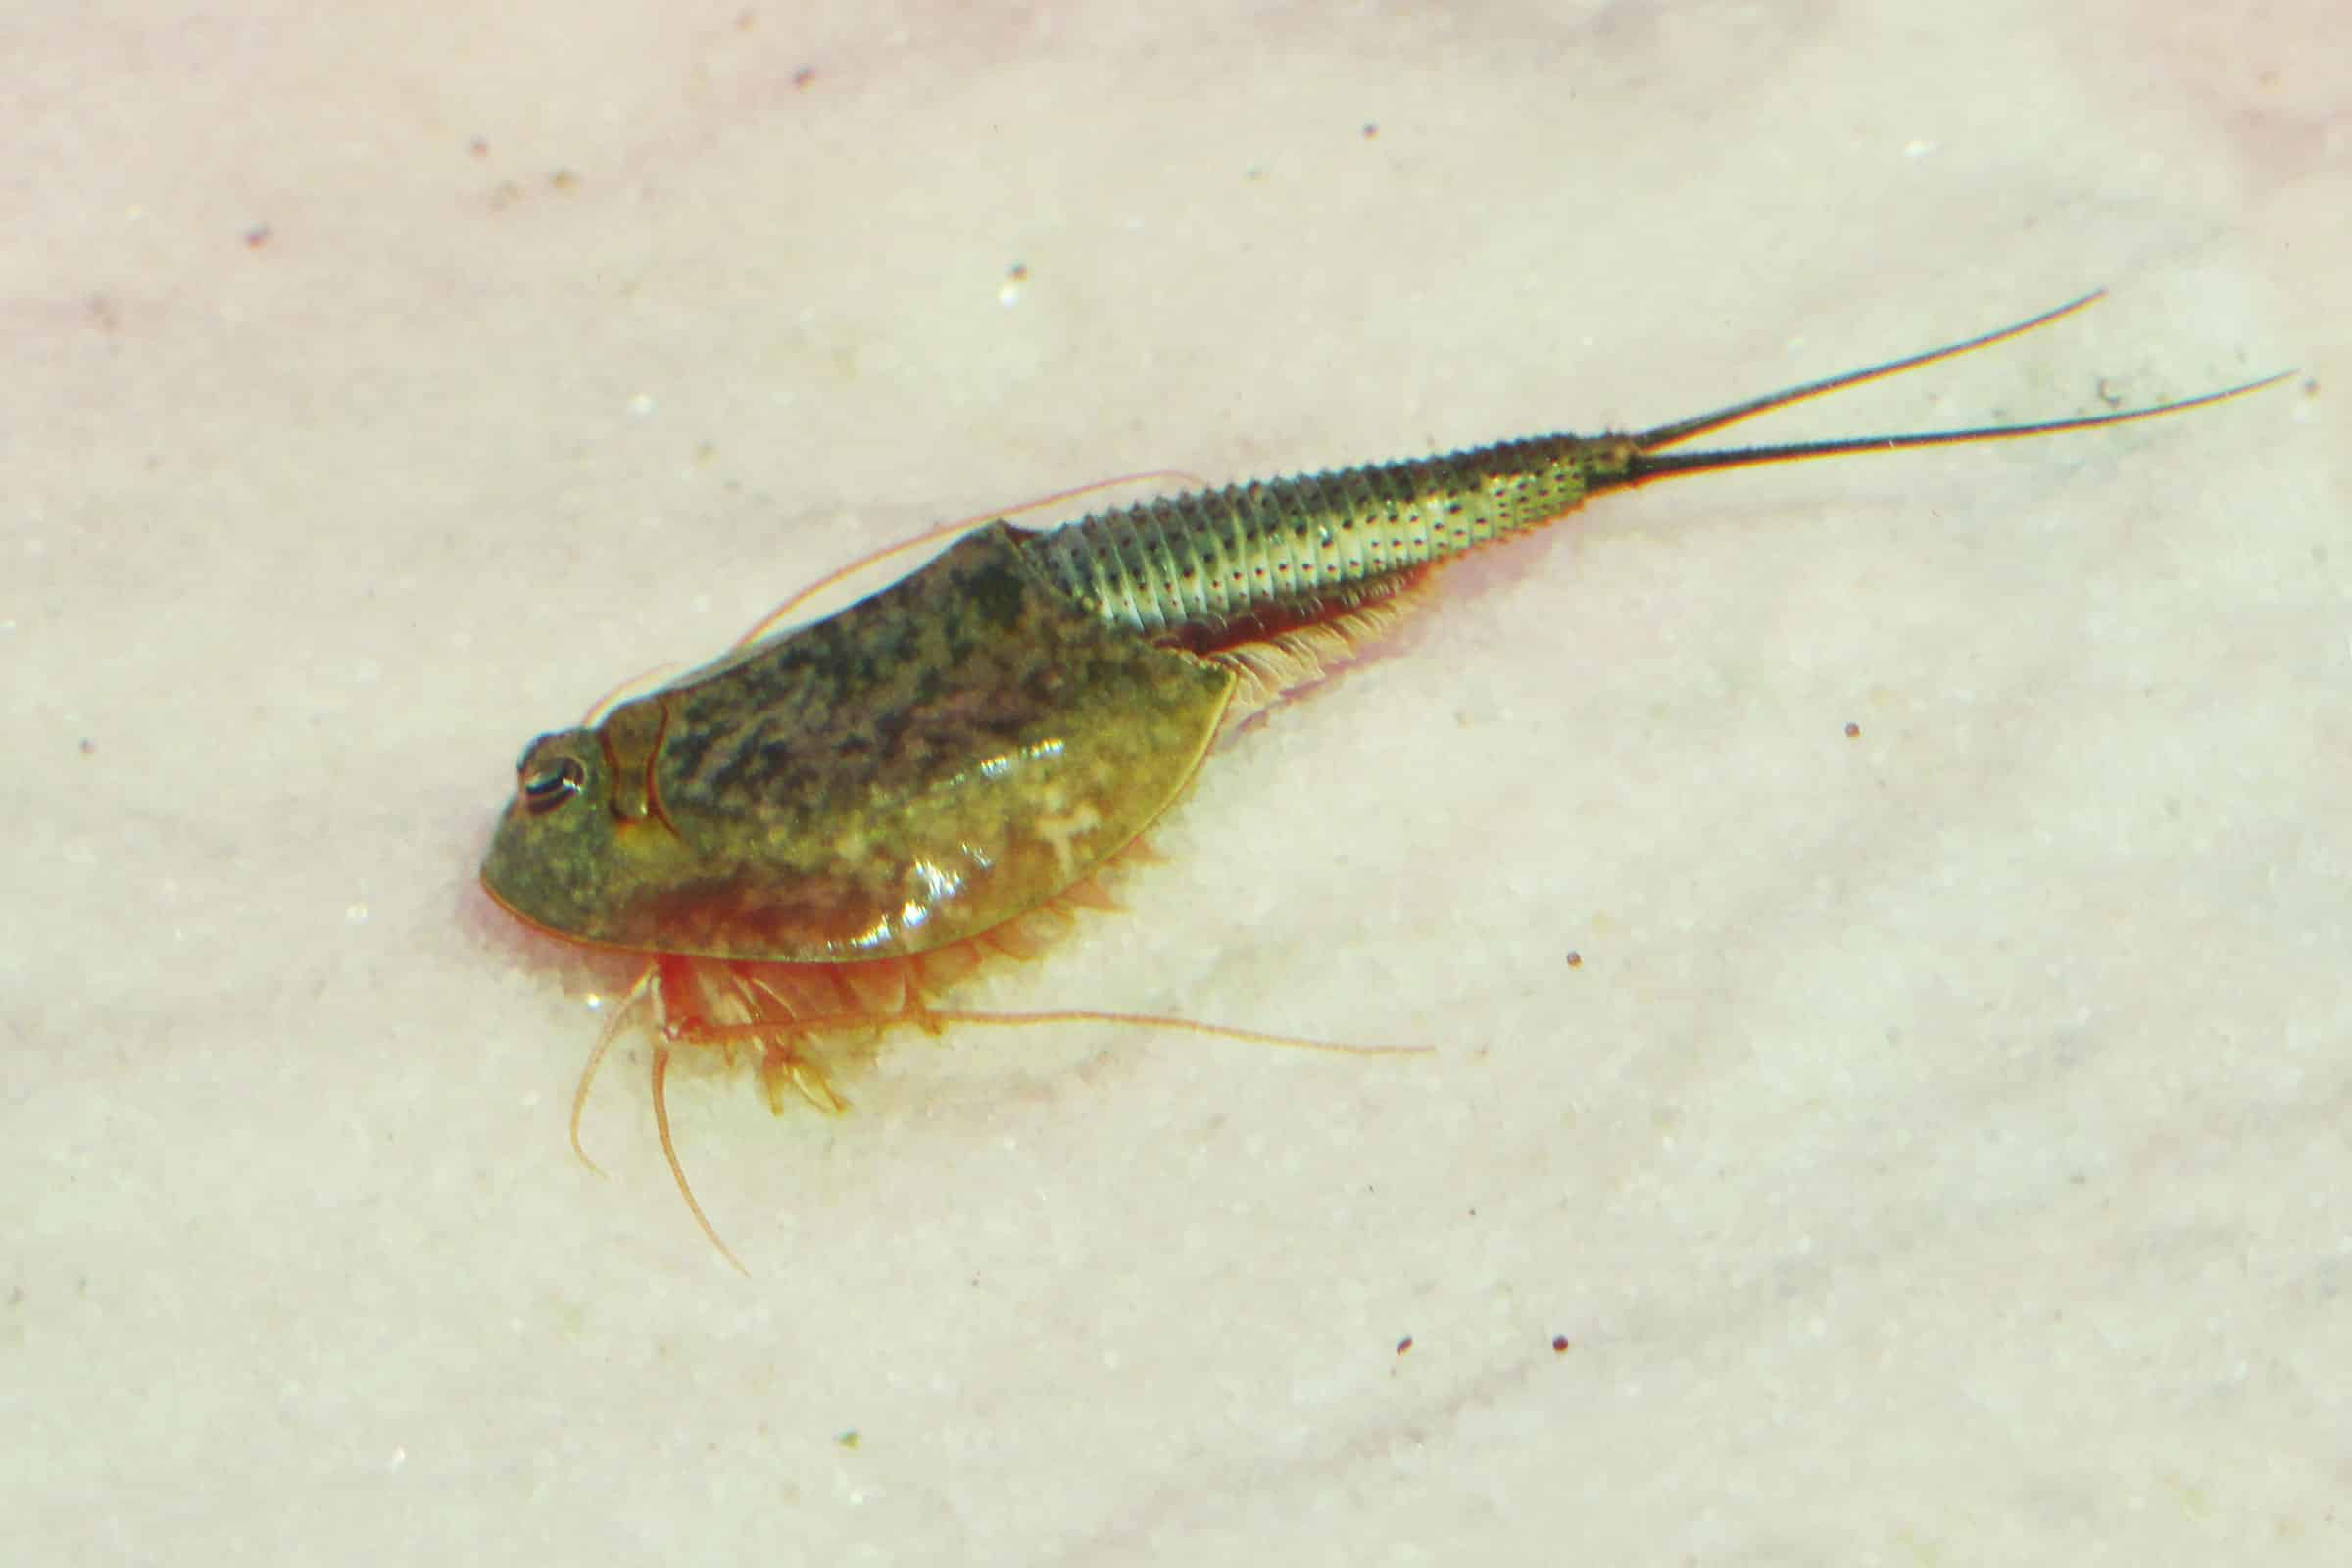 Triops newsberryi